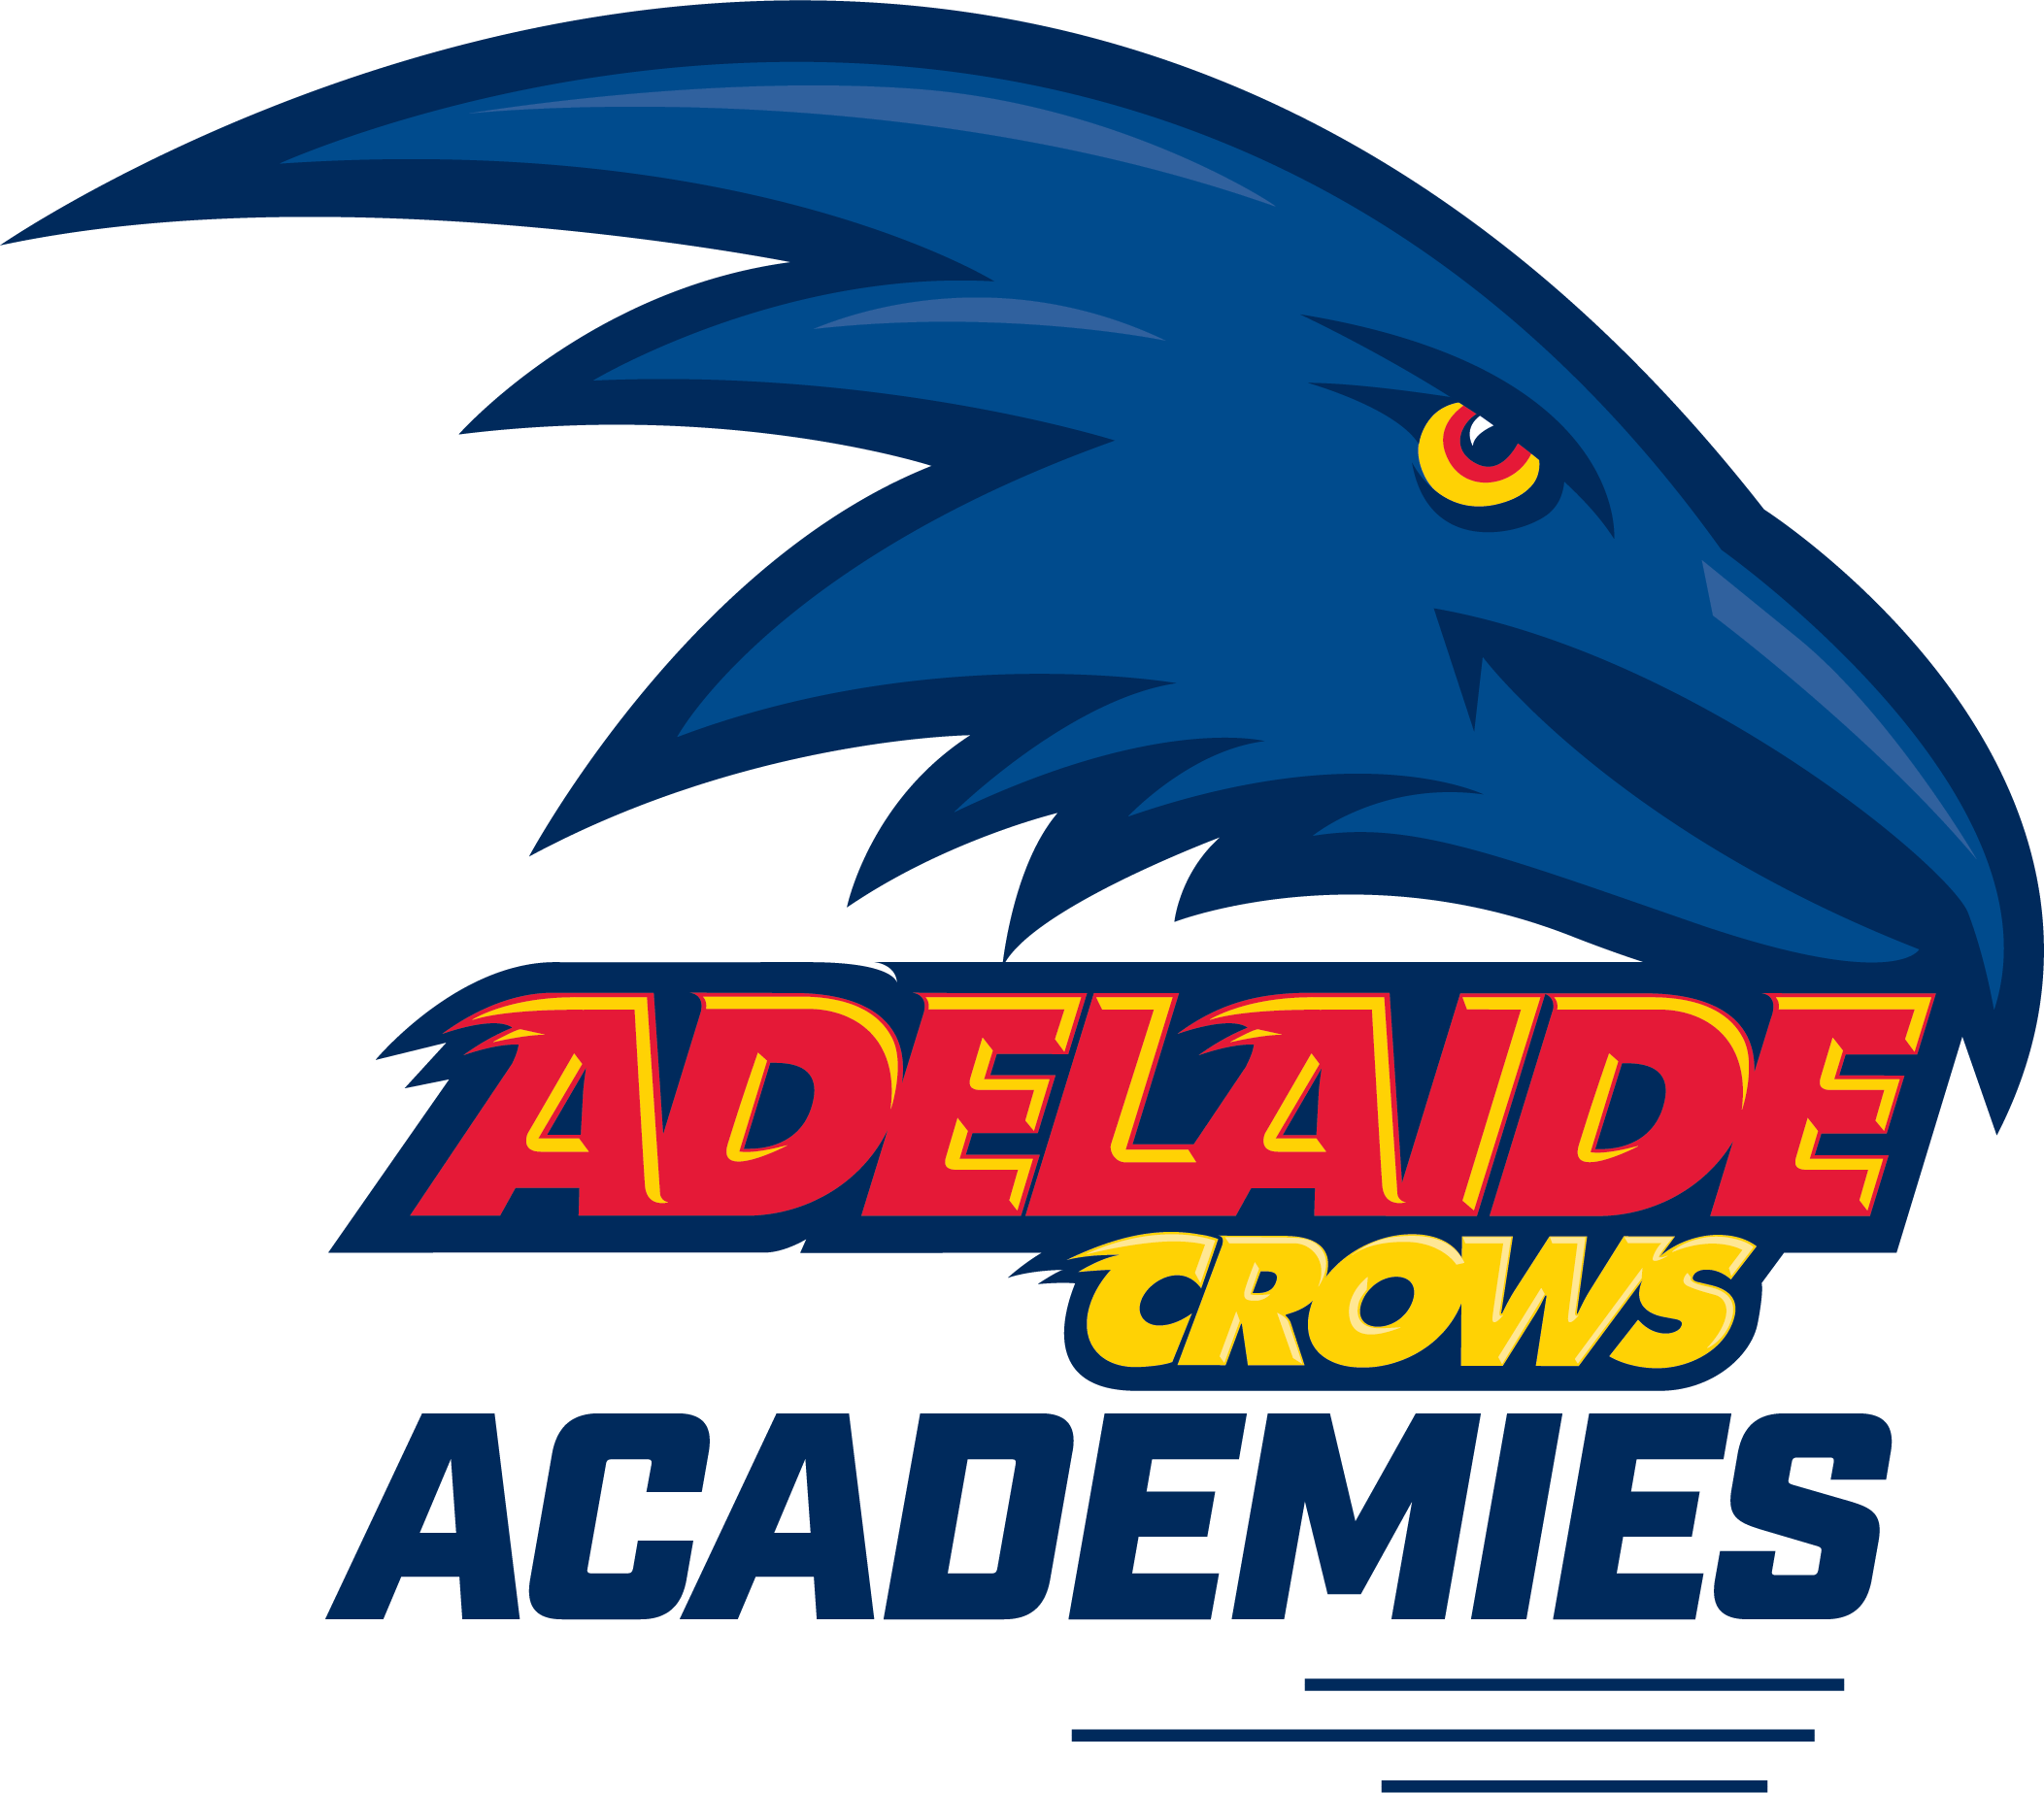 Adelaide crows clipart transparent library About Academies - AFC.com.au transparent library